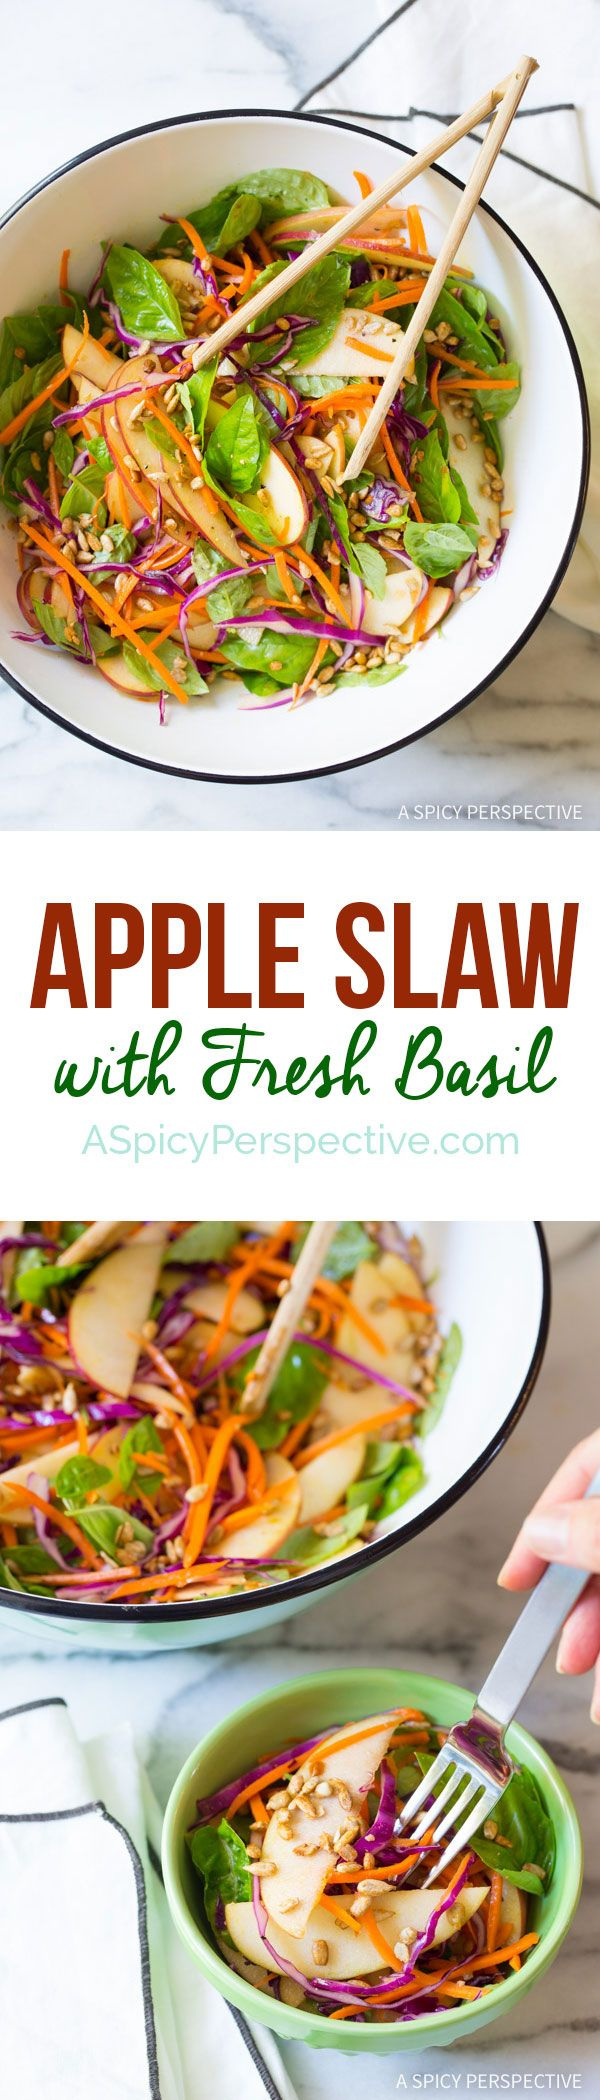 fine silver jewelry online Amazing and Easy Apple Slaw Salad with Fresh Basil Leaves and Sunflower Seeds on ASpicyPerspective com